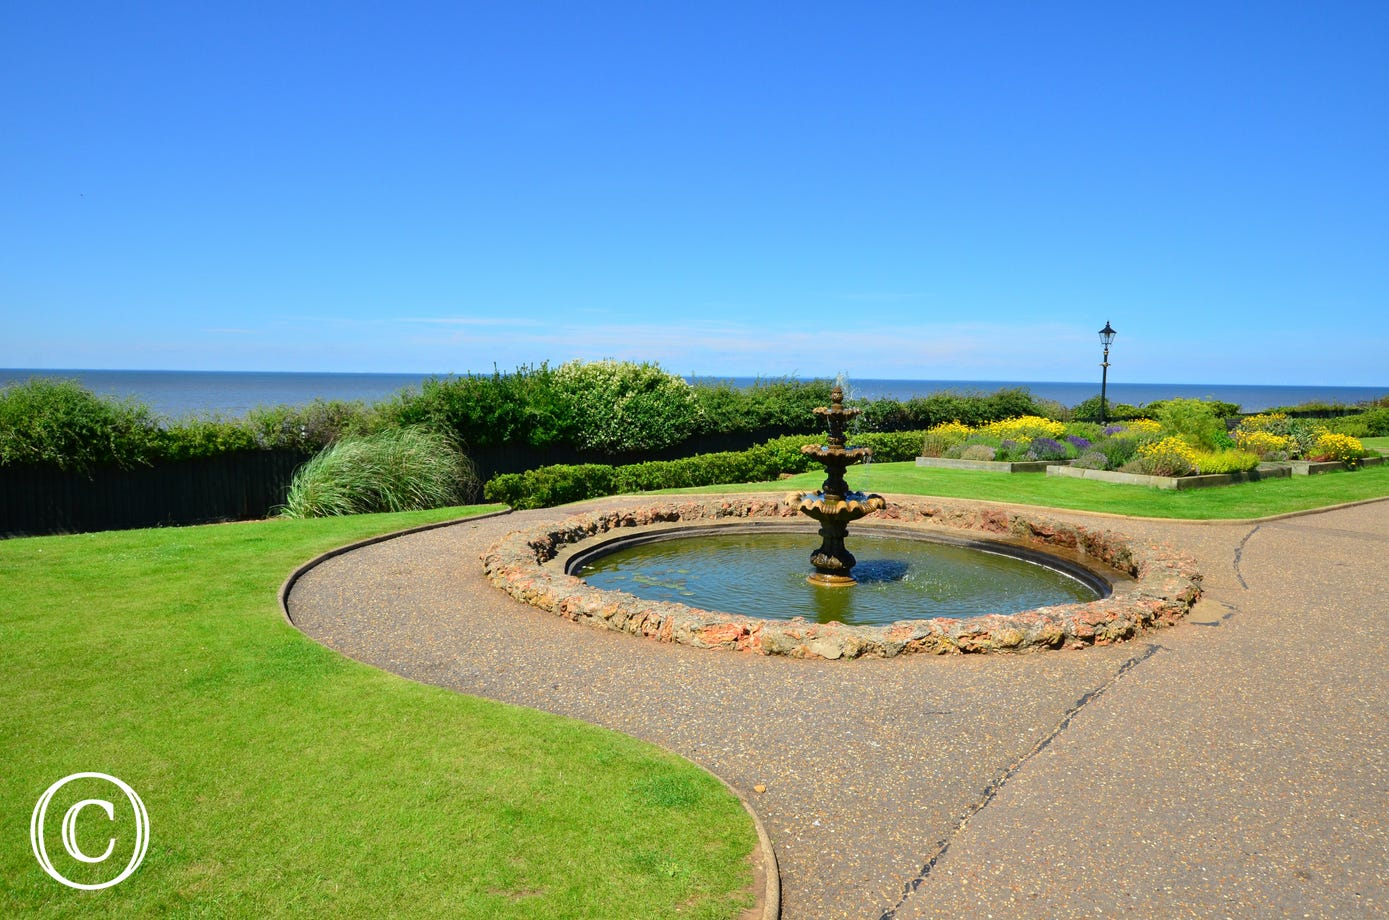 Looking towards the sea at Hunstanton